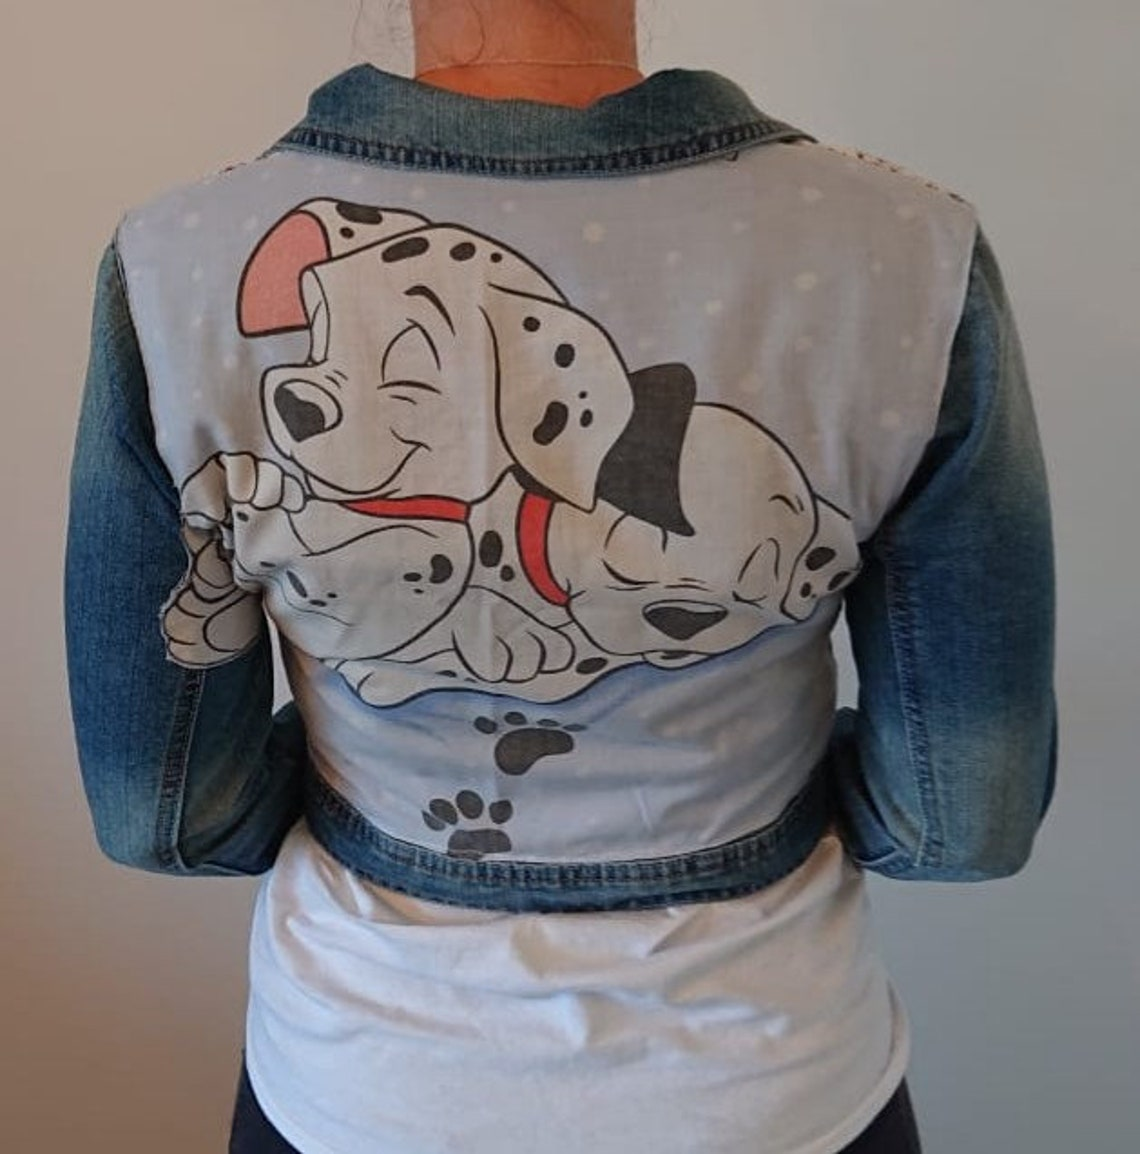 101 Dalmatians Cropped Denim Jacket. Up-cycled Jacket Using Vintage Fabric. Great Gift For A Disney Lover.